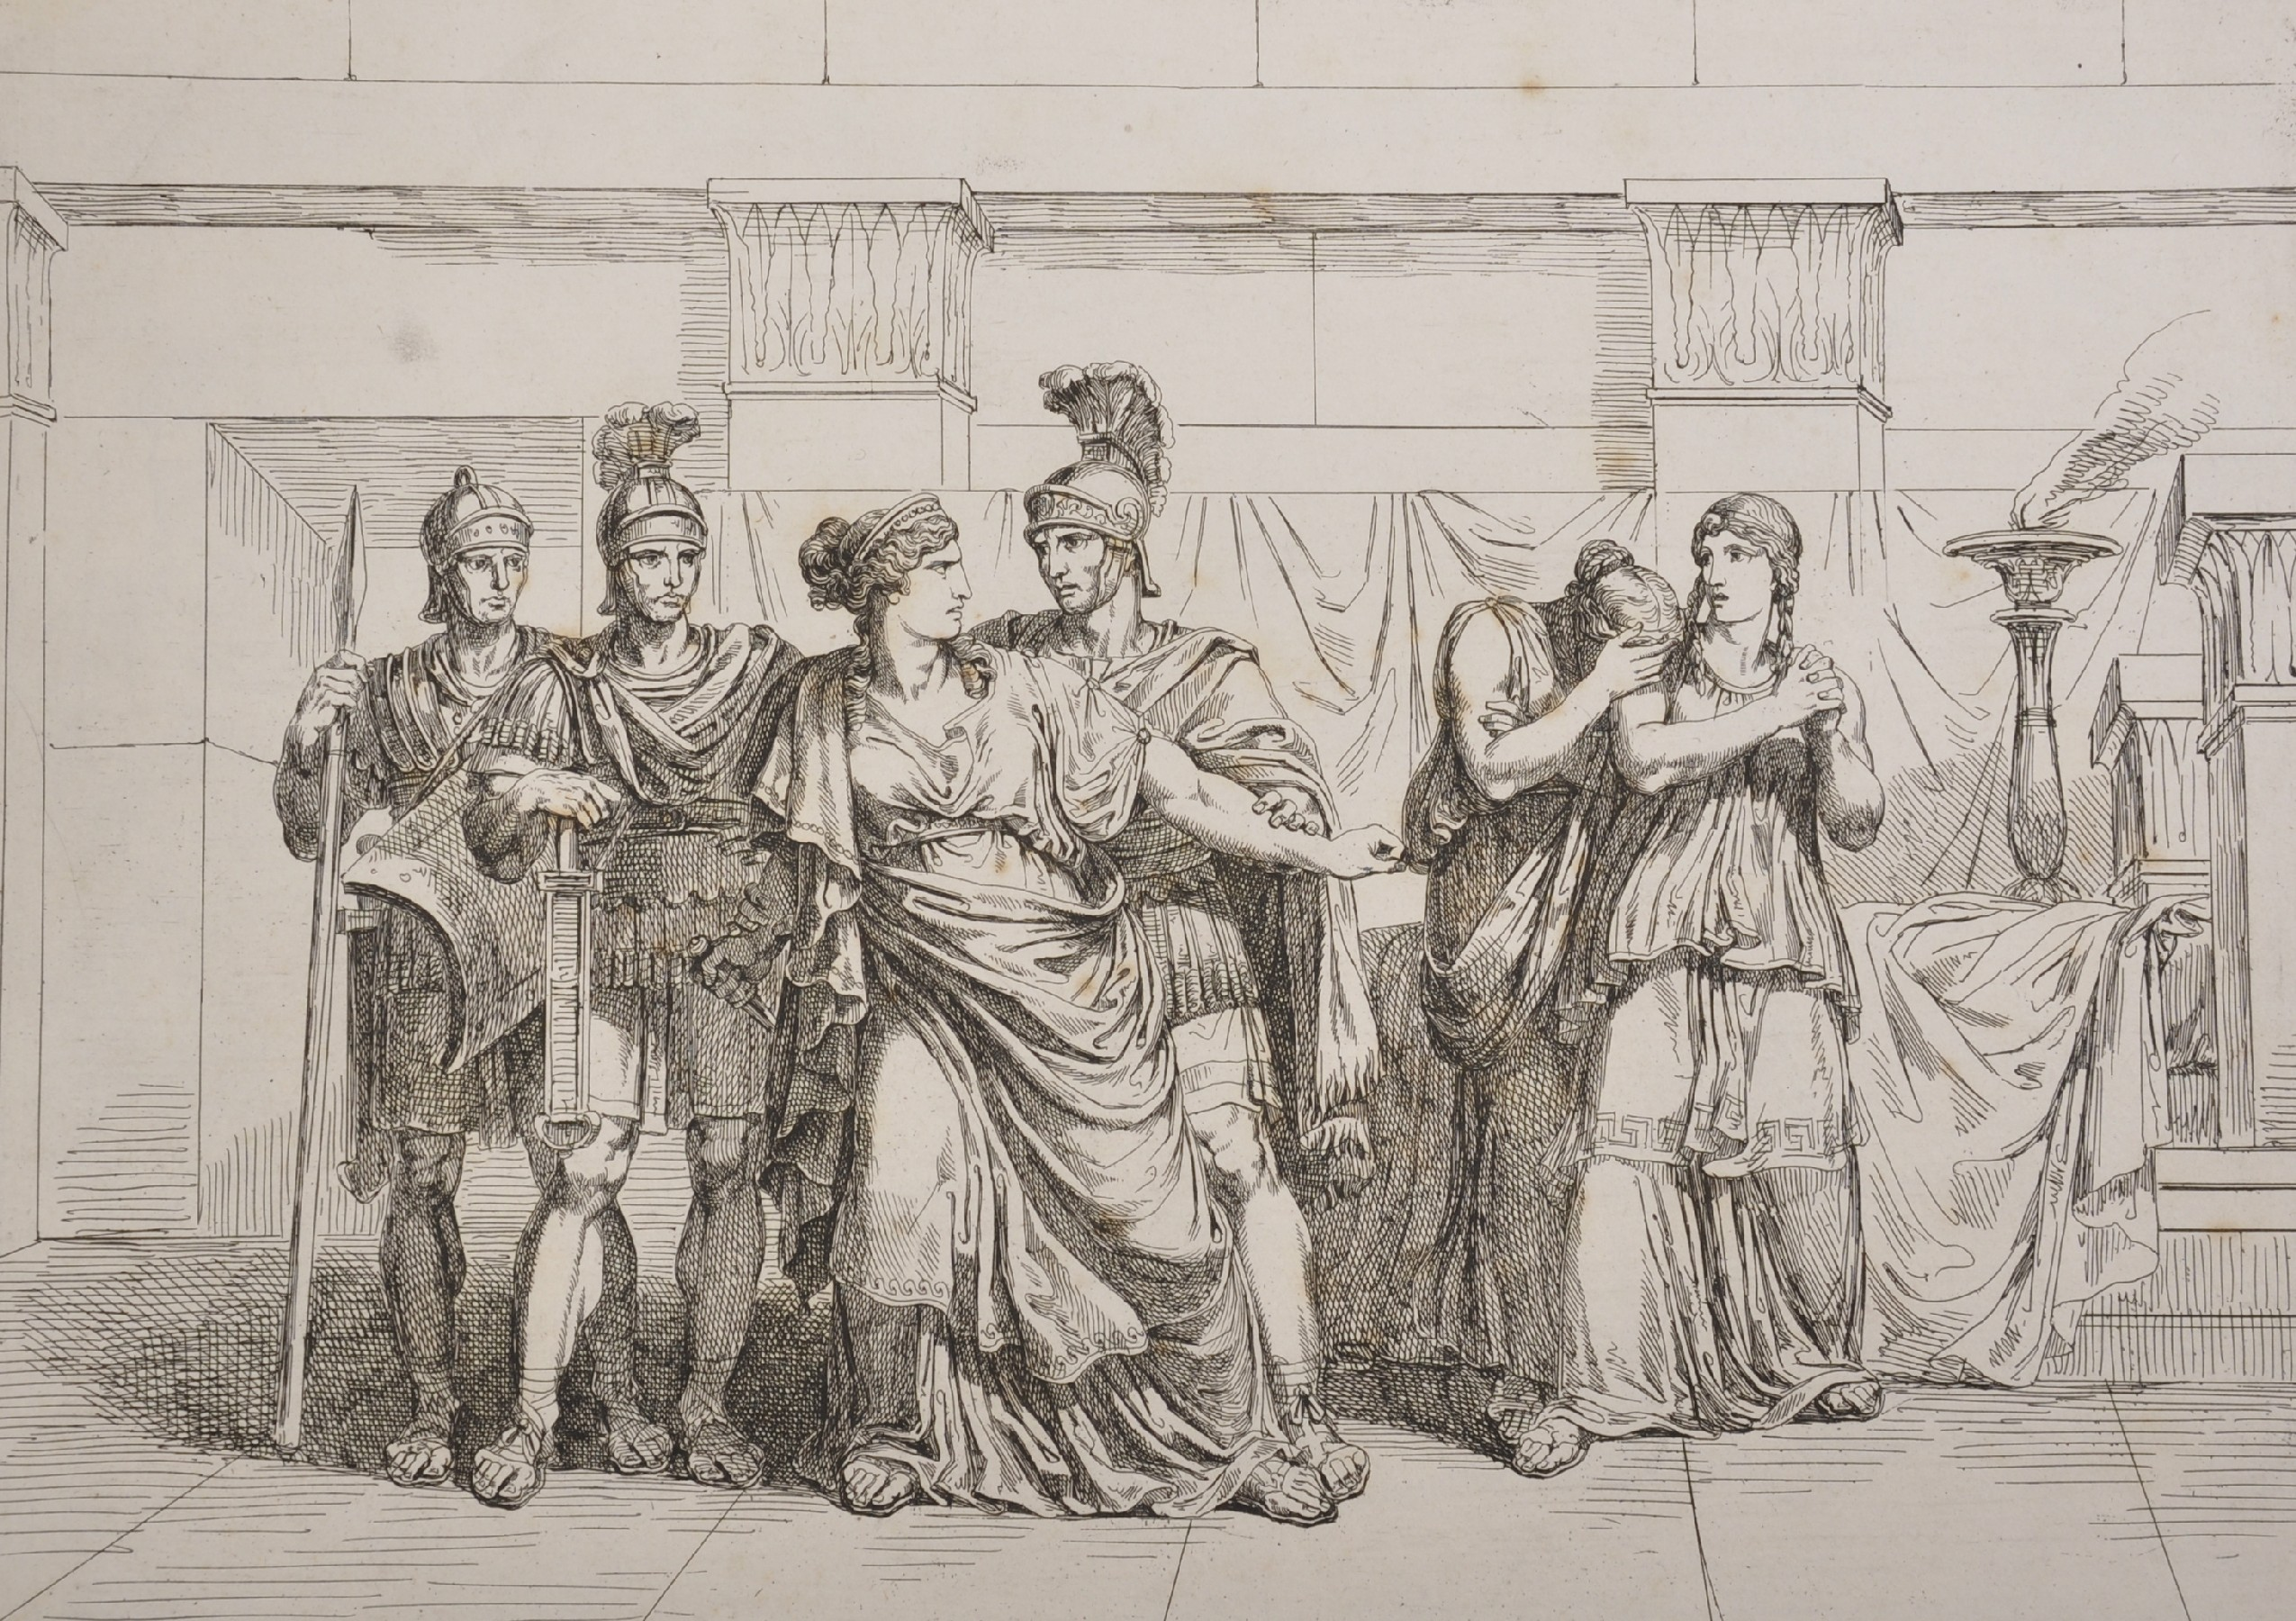 """After Bartolomeo Pinelli (1771-1835) Italian. """"Cleopatra"""", Engraving, 15"""" x 16.5"""", bound in """""""